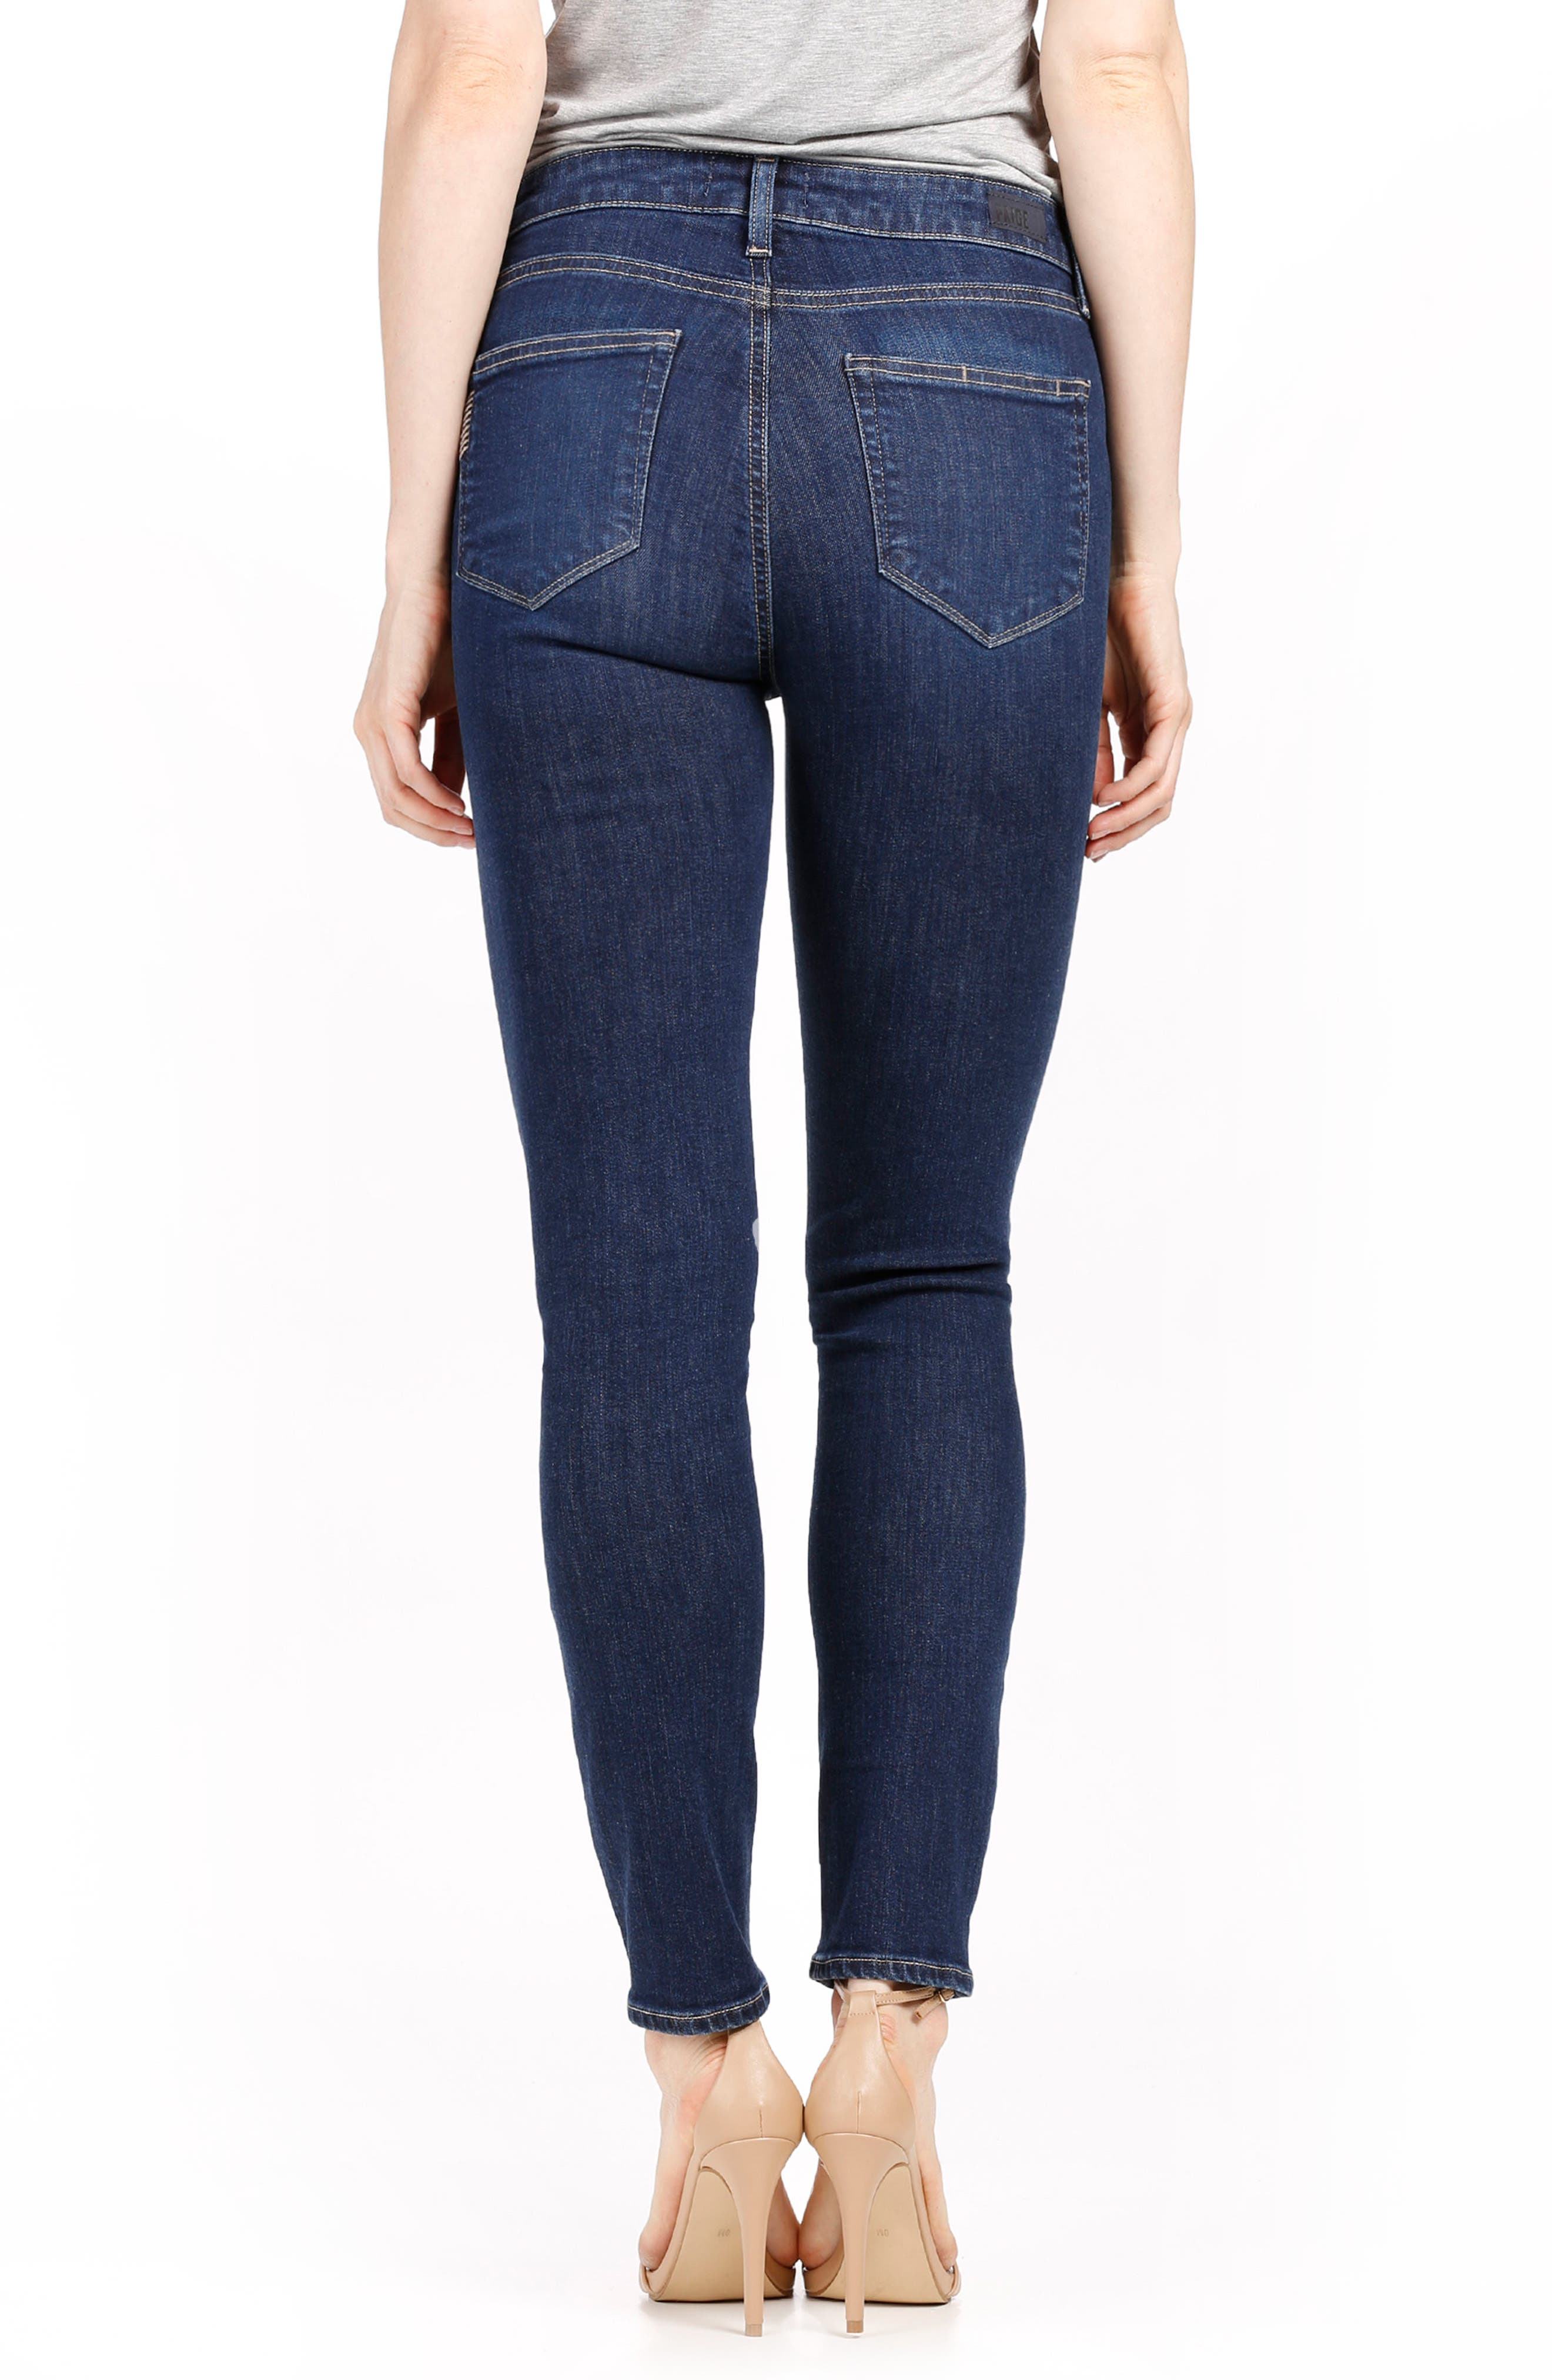 Hoxton High Waist Ankle Skinny Jeans,                             Alternate thumbnail 2, color,                             400